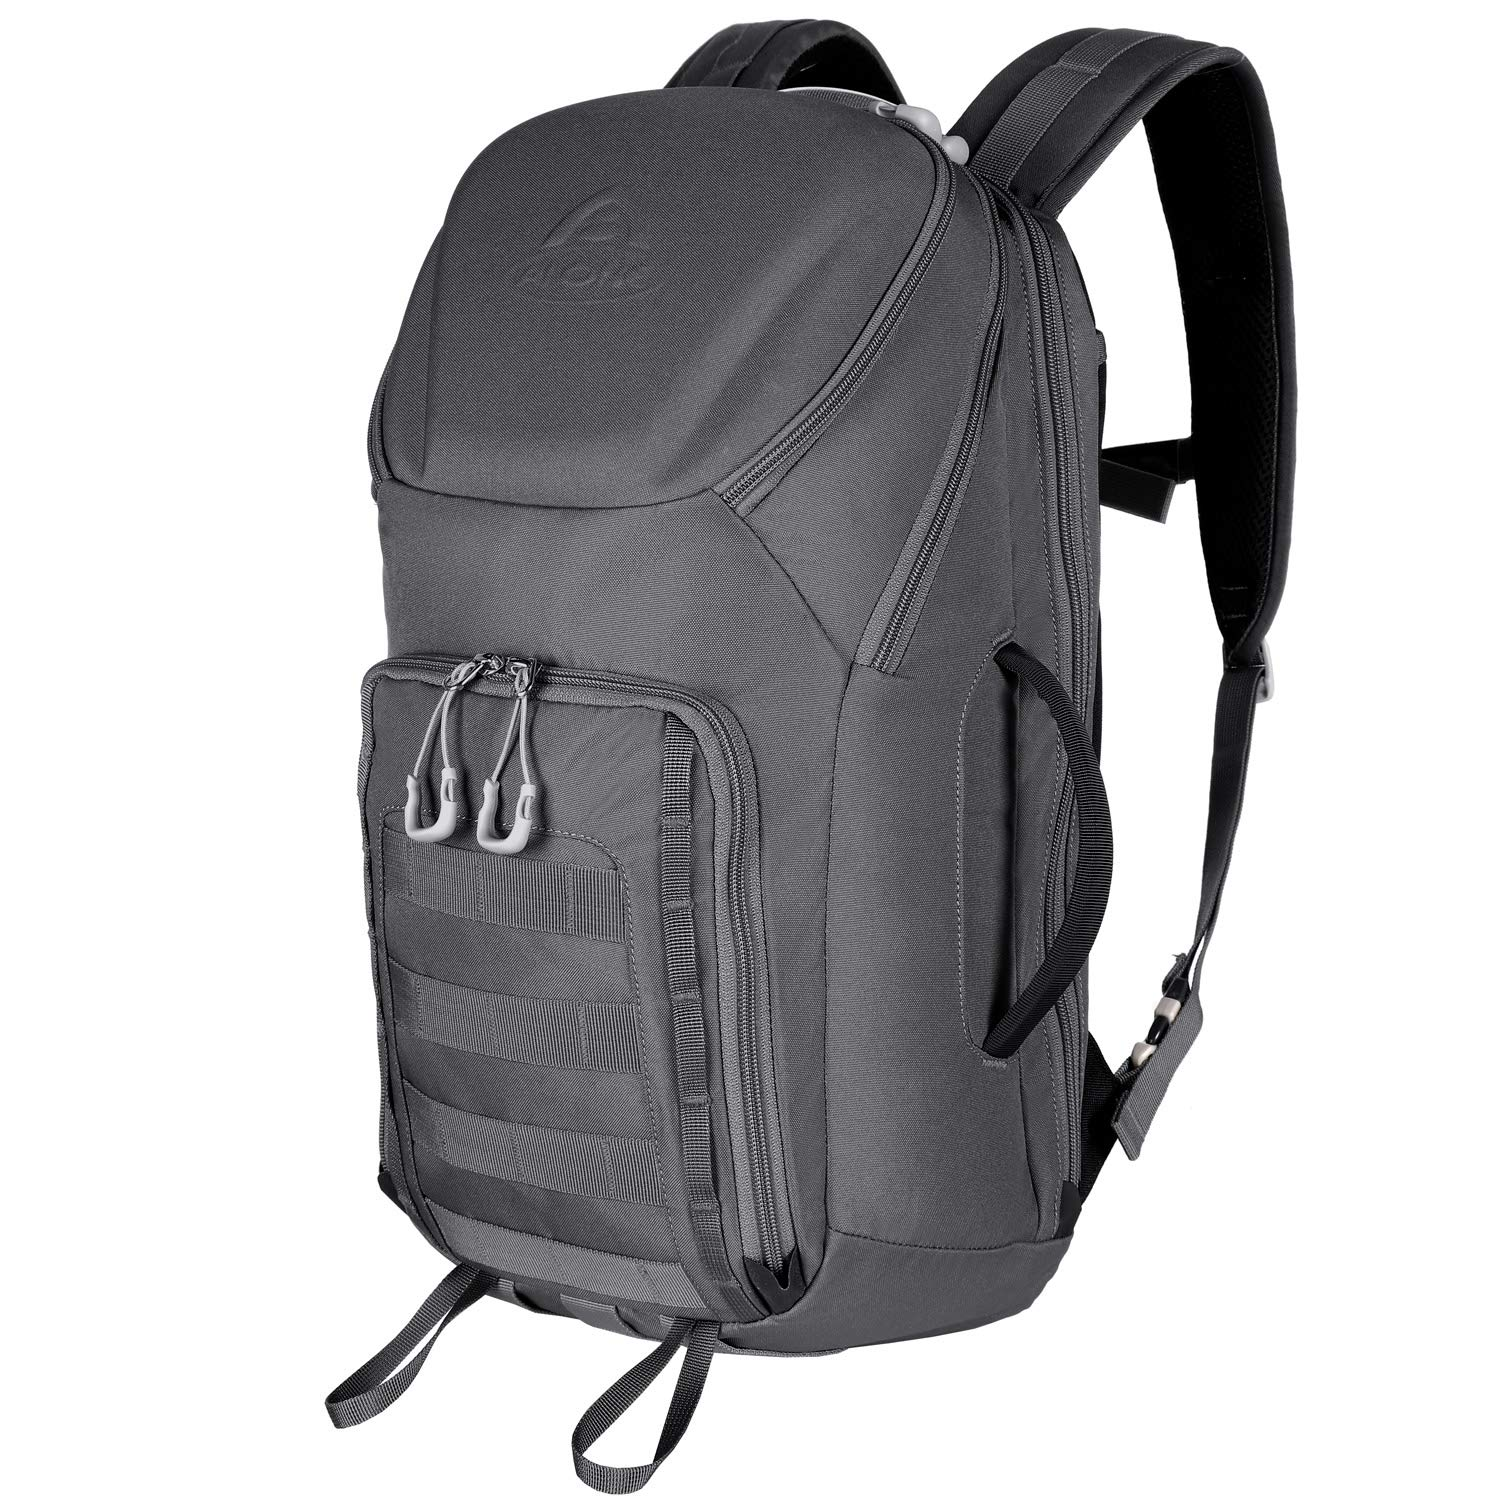 Aione Tactical Backpack Military Army Backpack Daypack 25L/30L/32L/56L Assault Pack Bug Out Bag with Hard Shell Top Pocket